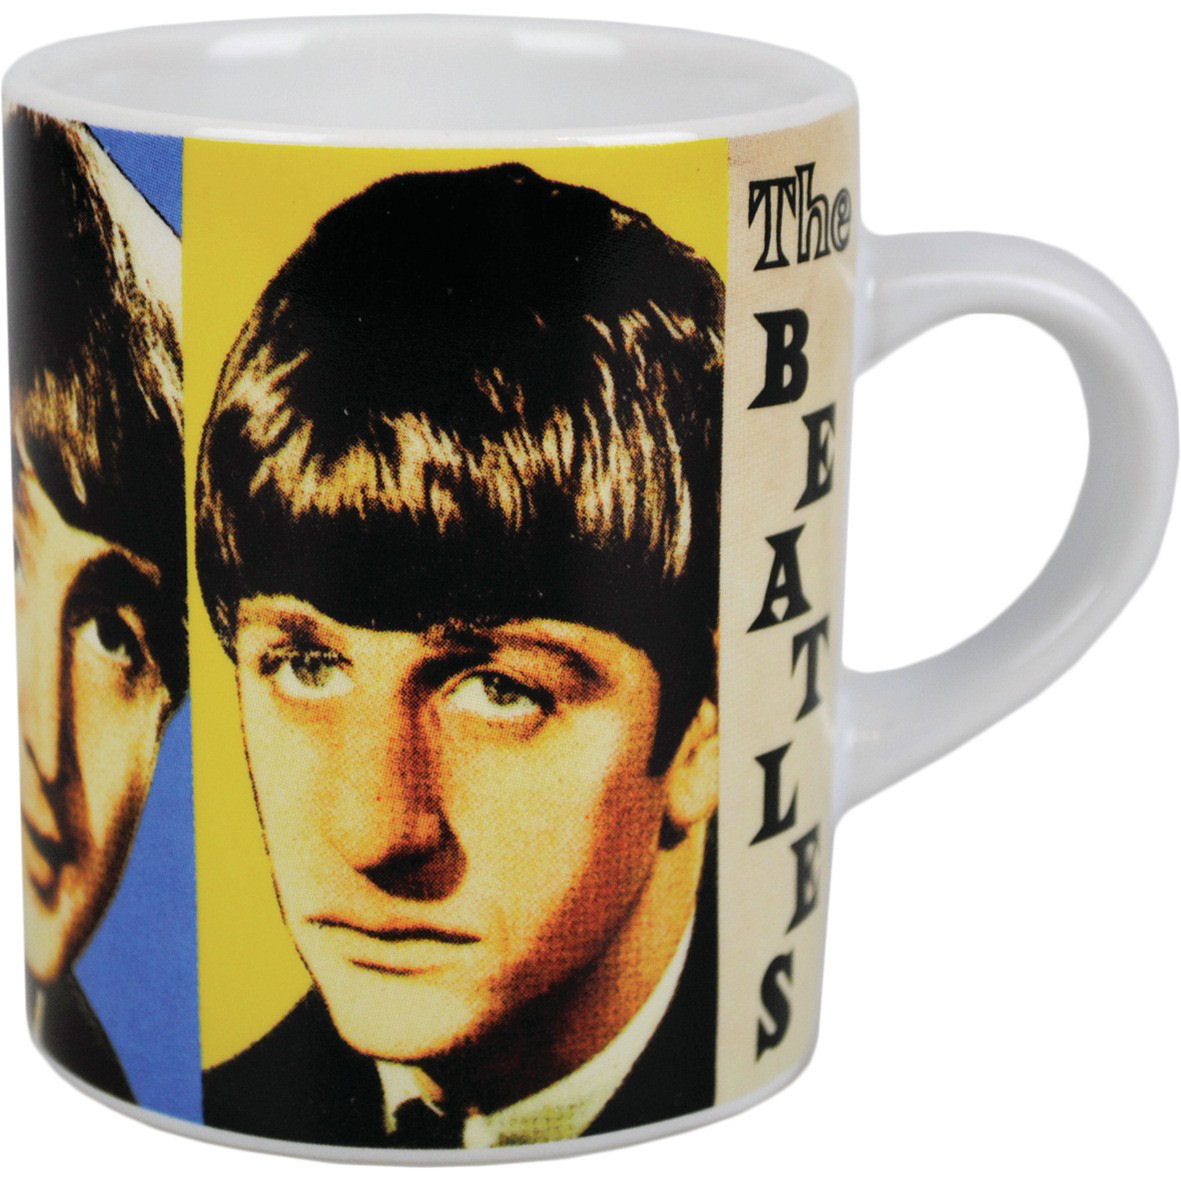 BEATLES FACES MINI ESPRESSO MUG LENNON RINGO CERAMIC COFFEE CUP GIFT OFFICIAL